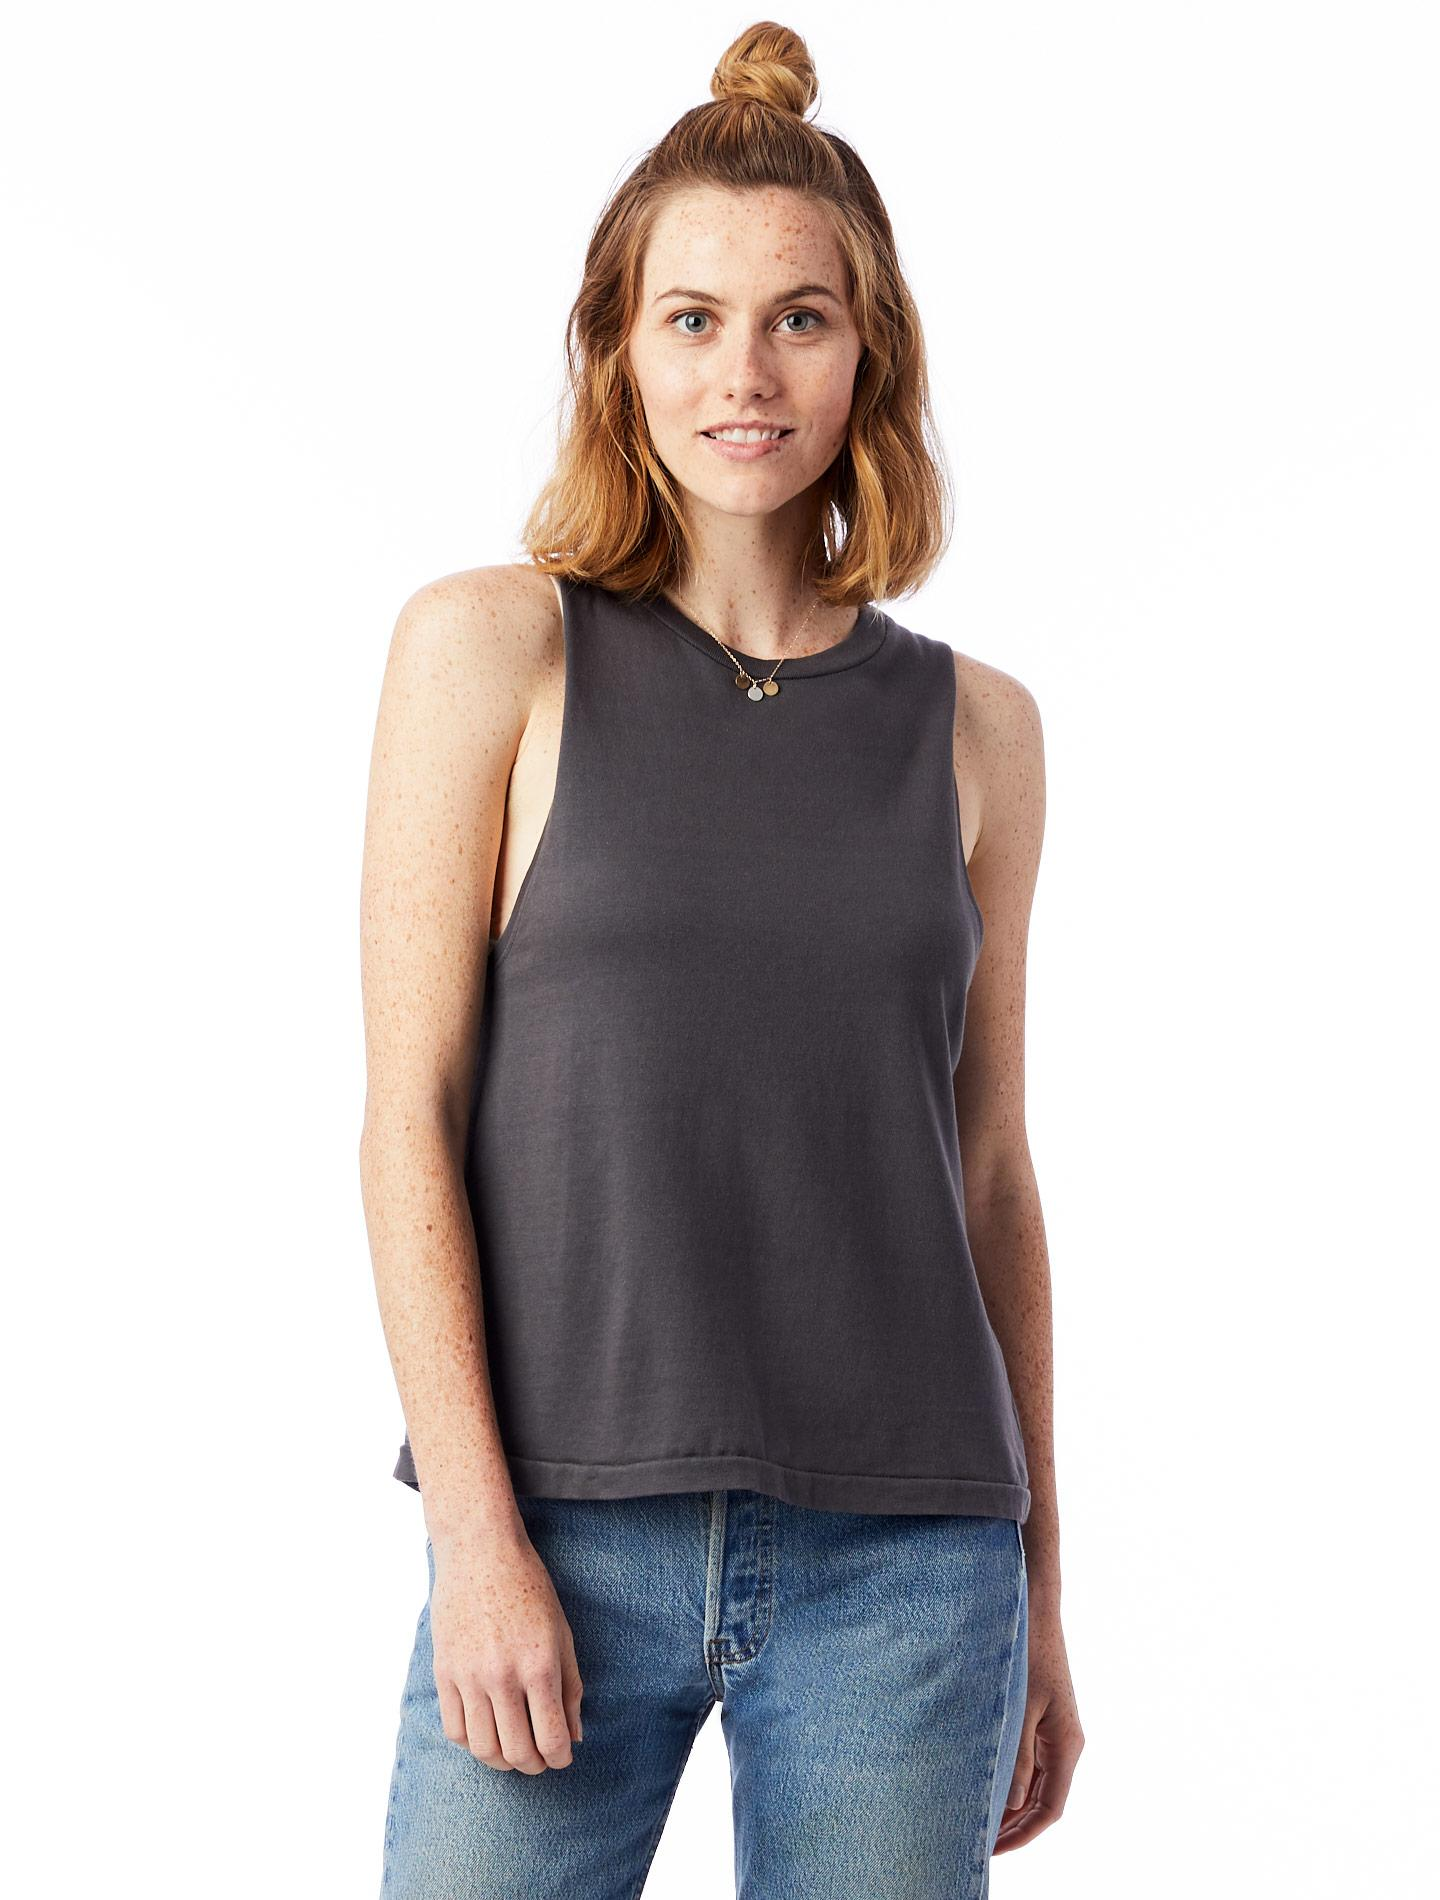 cbfb7d962 Lyst - Alternative Apparel Heavy Wash Jersey Muscle Tank Top in Gray